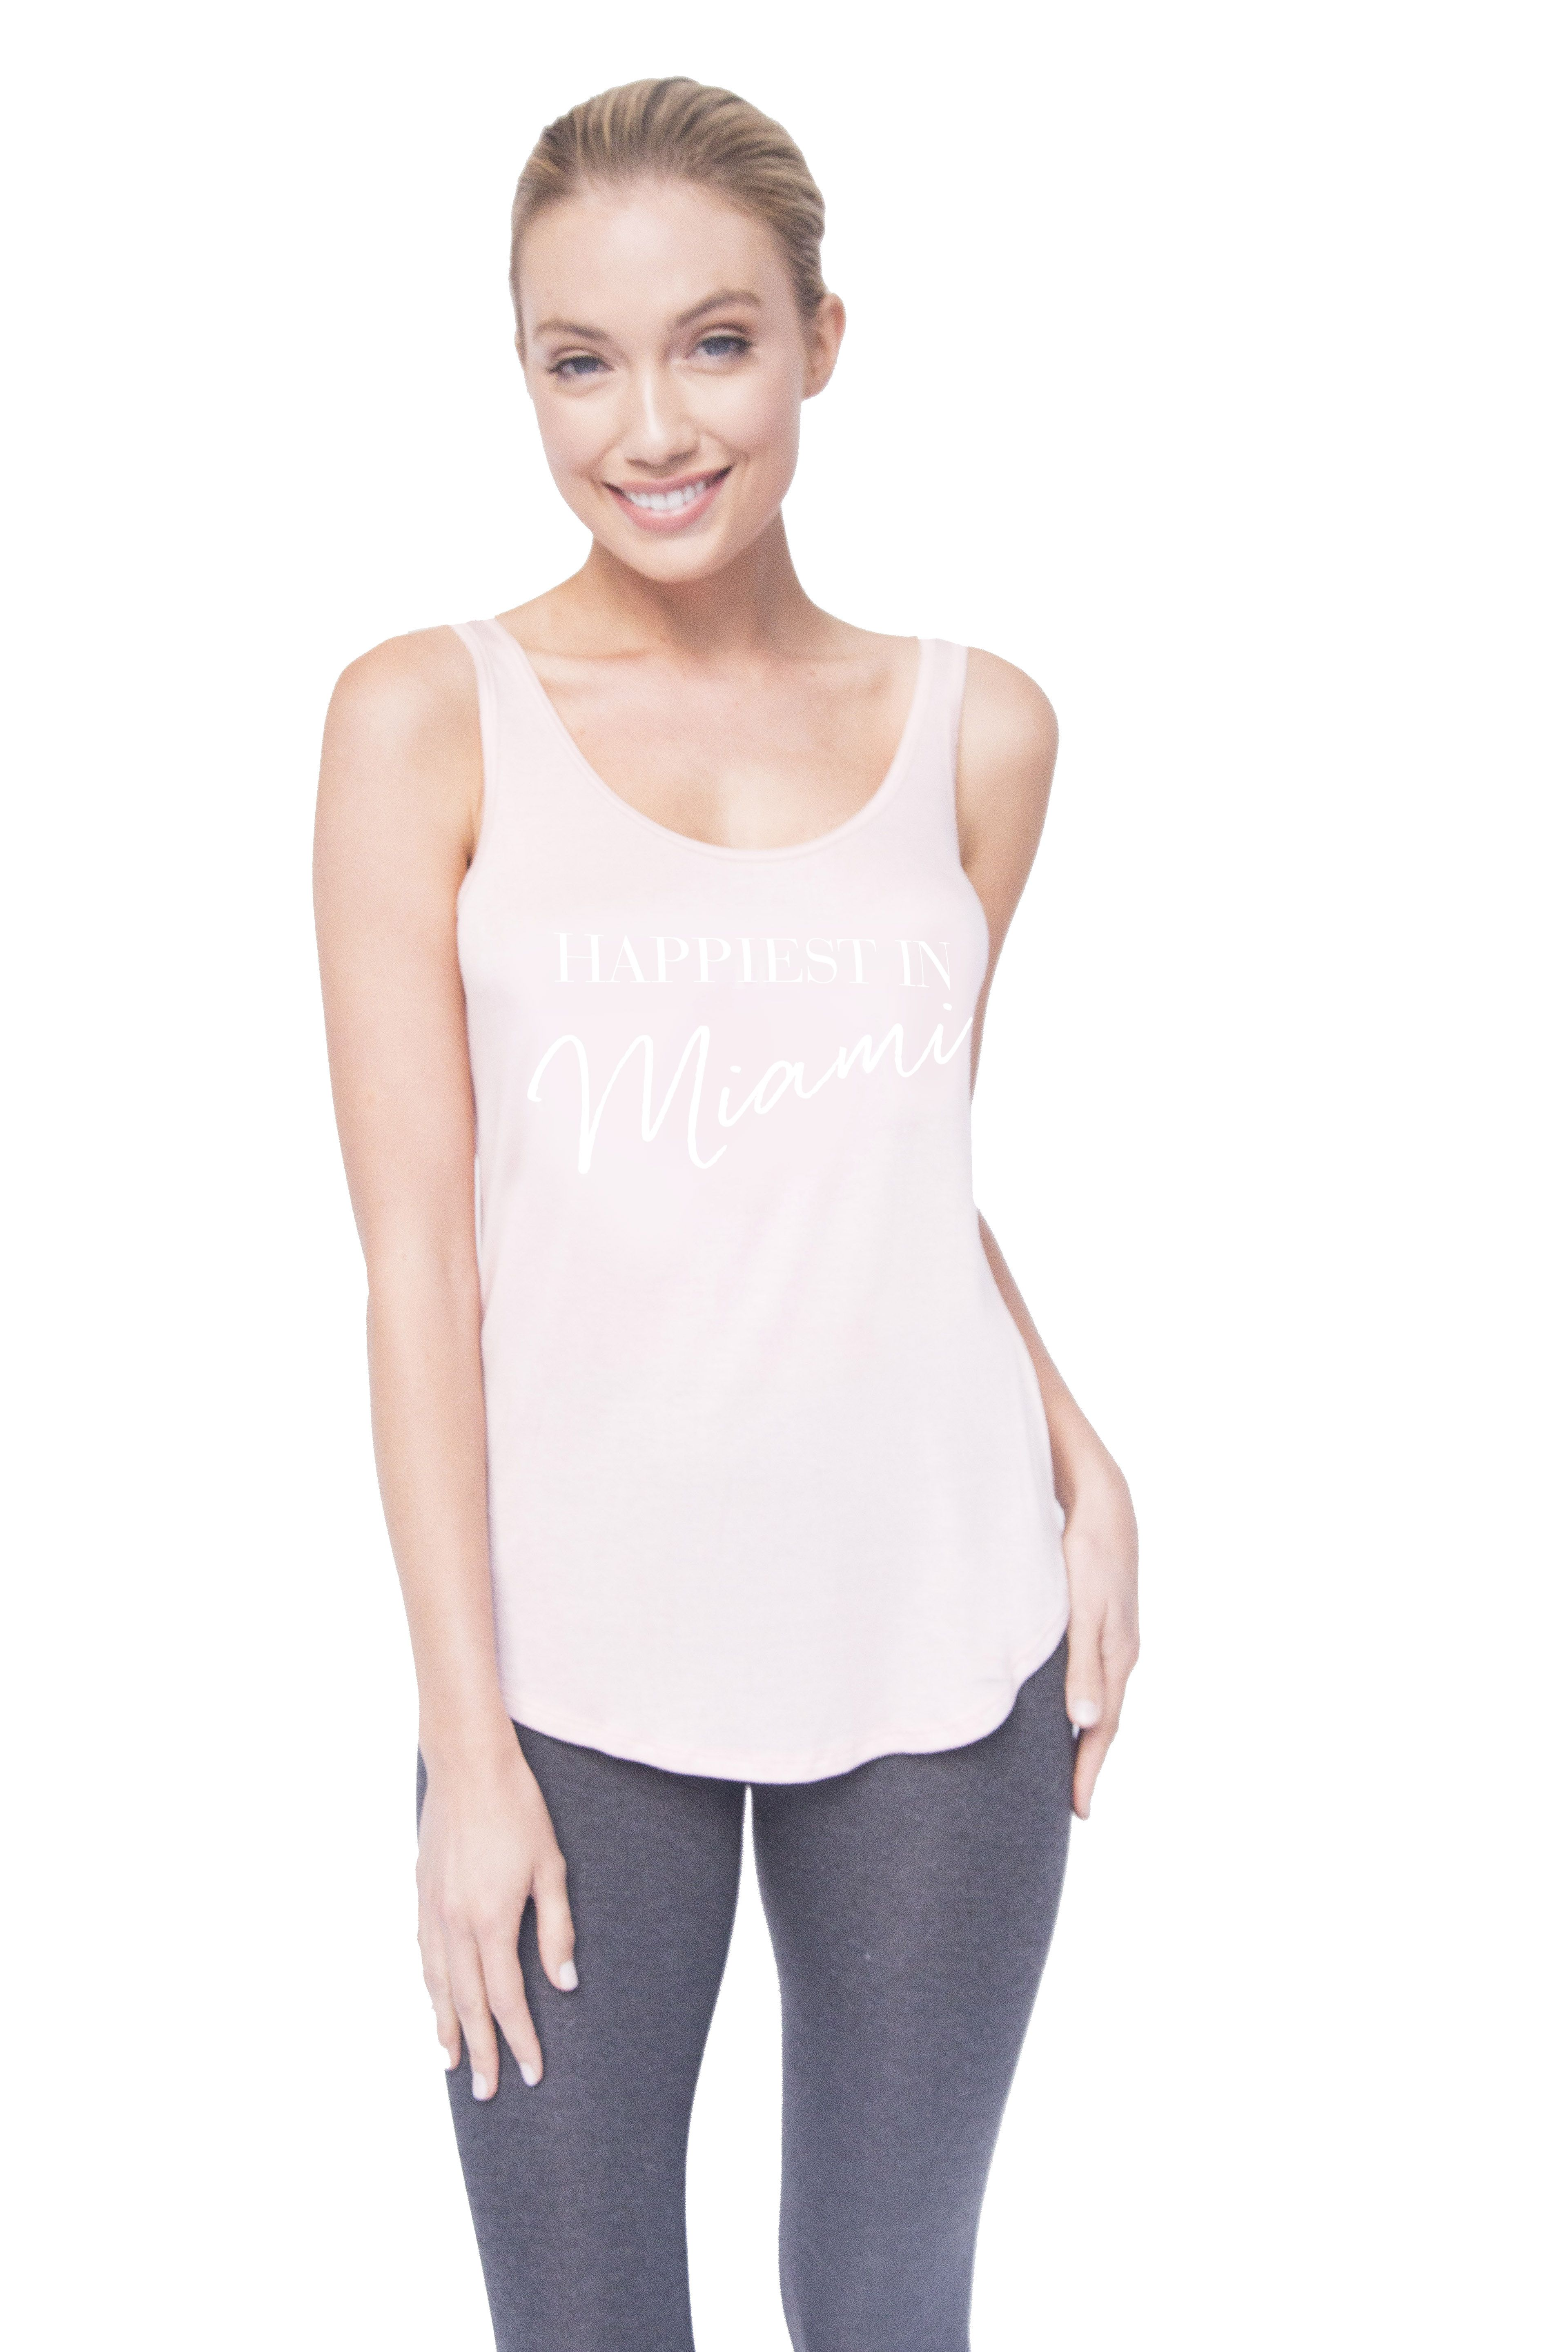 Happiest in Miami Renvi Tank in Blush with White Script ...